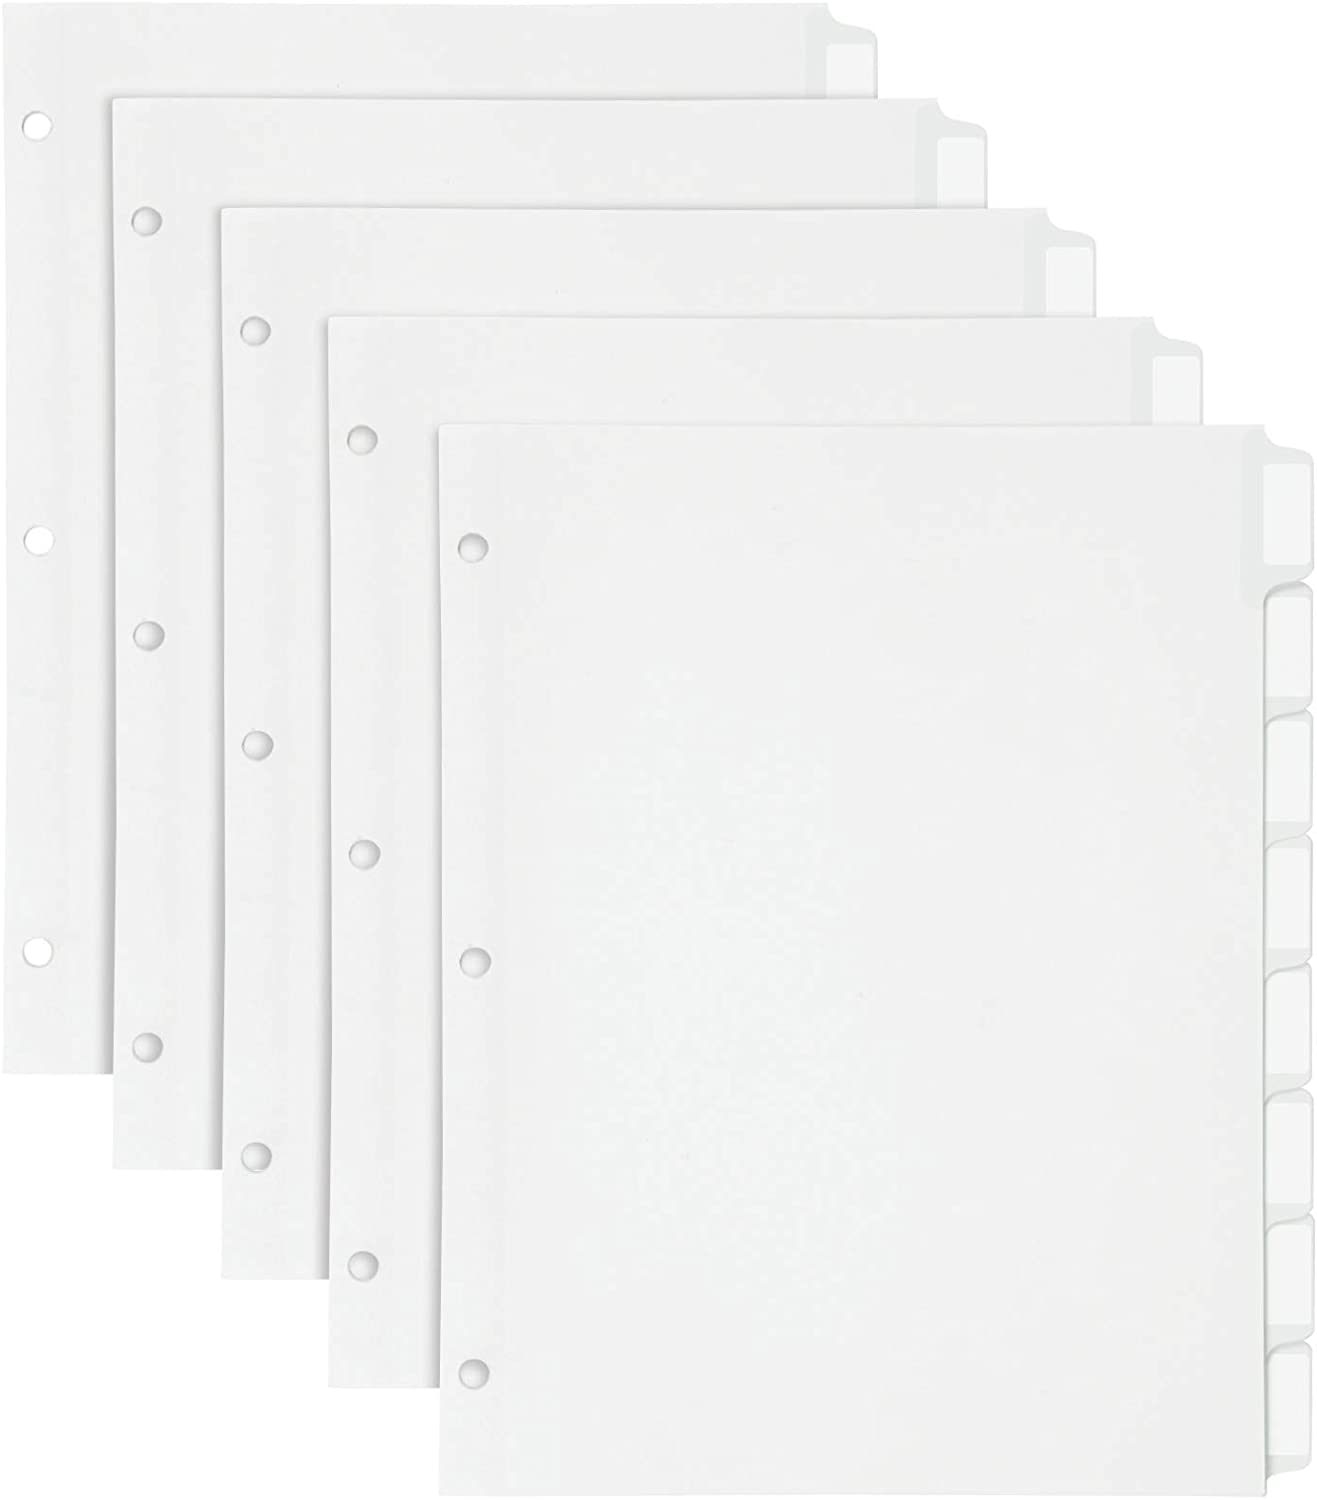 Oxford Customizable Binder Dividers, 8-Tab, Self-Stick Printable Tab Labels, Letter Size, 5 Sets (11315EE)